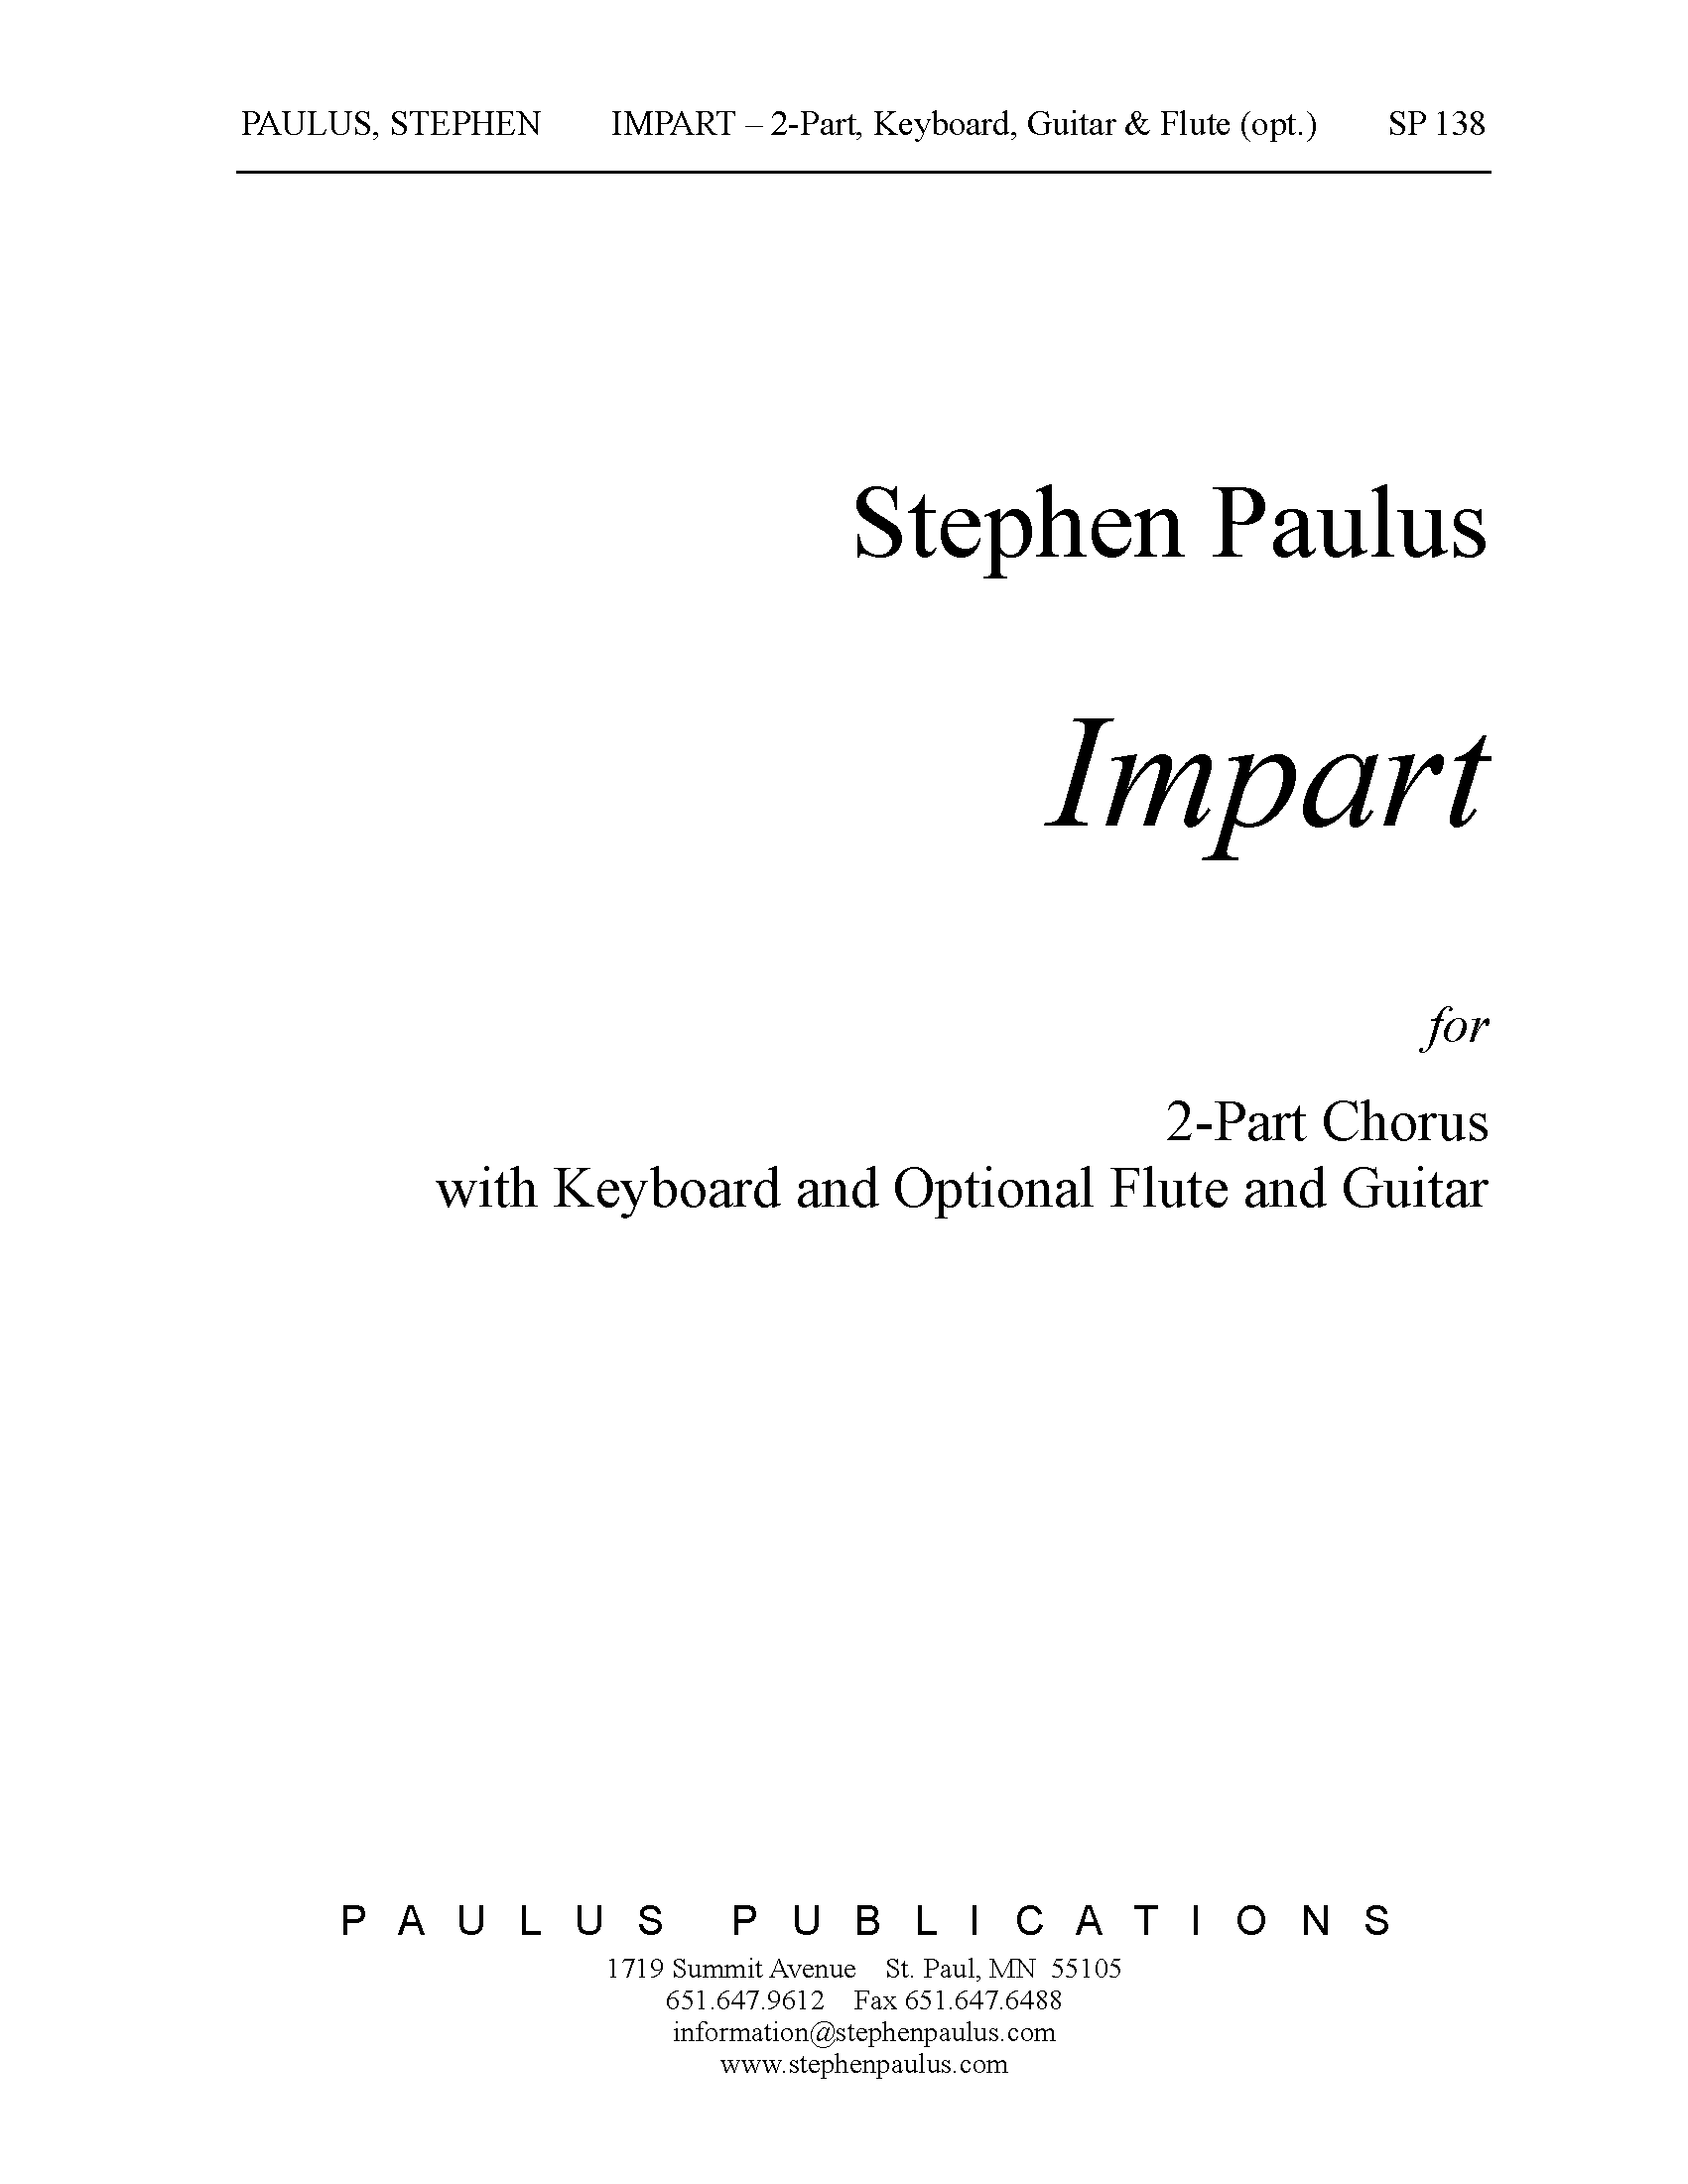 Impart for 2-Part Chorus & Keyboard (w/ opt. Flute)